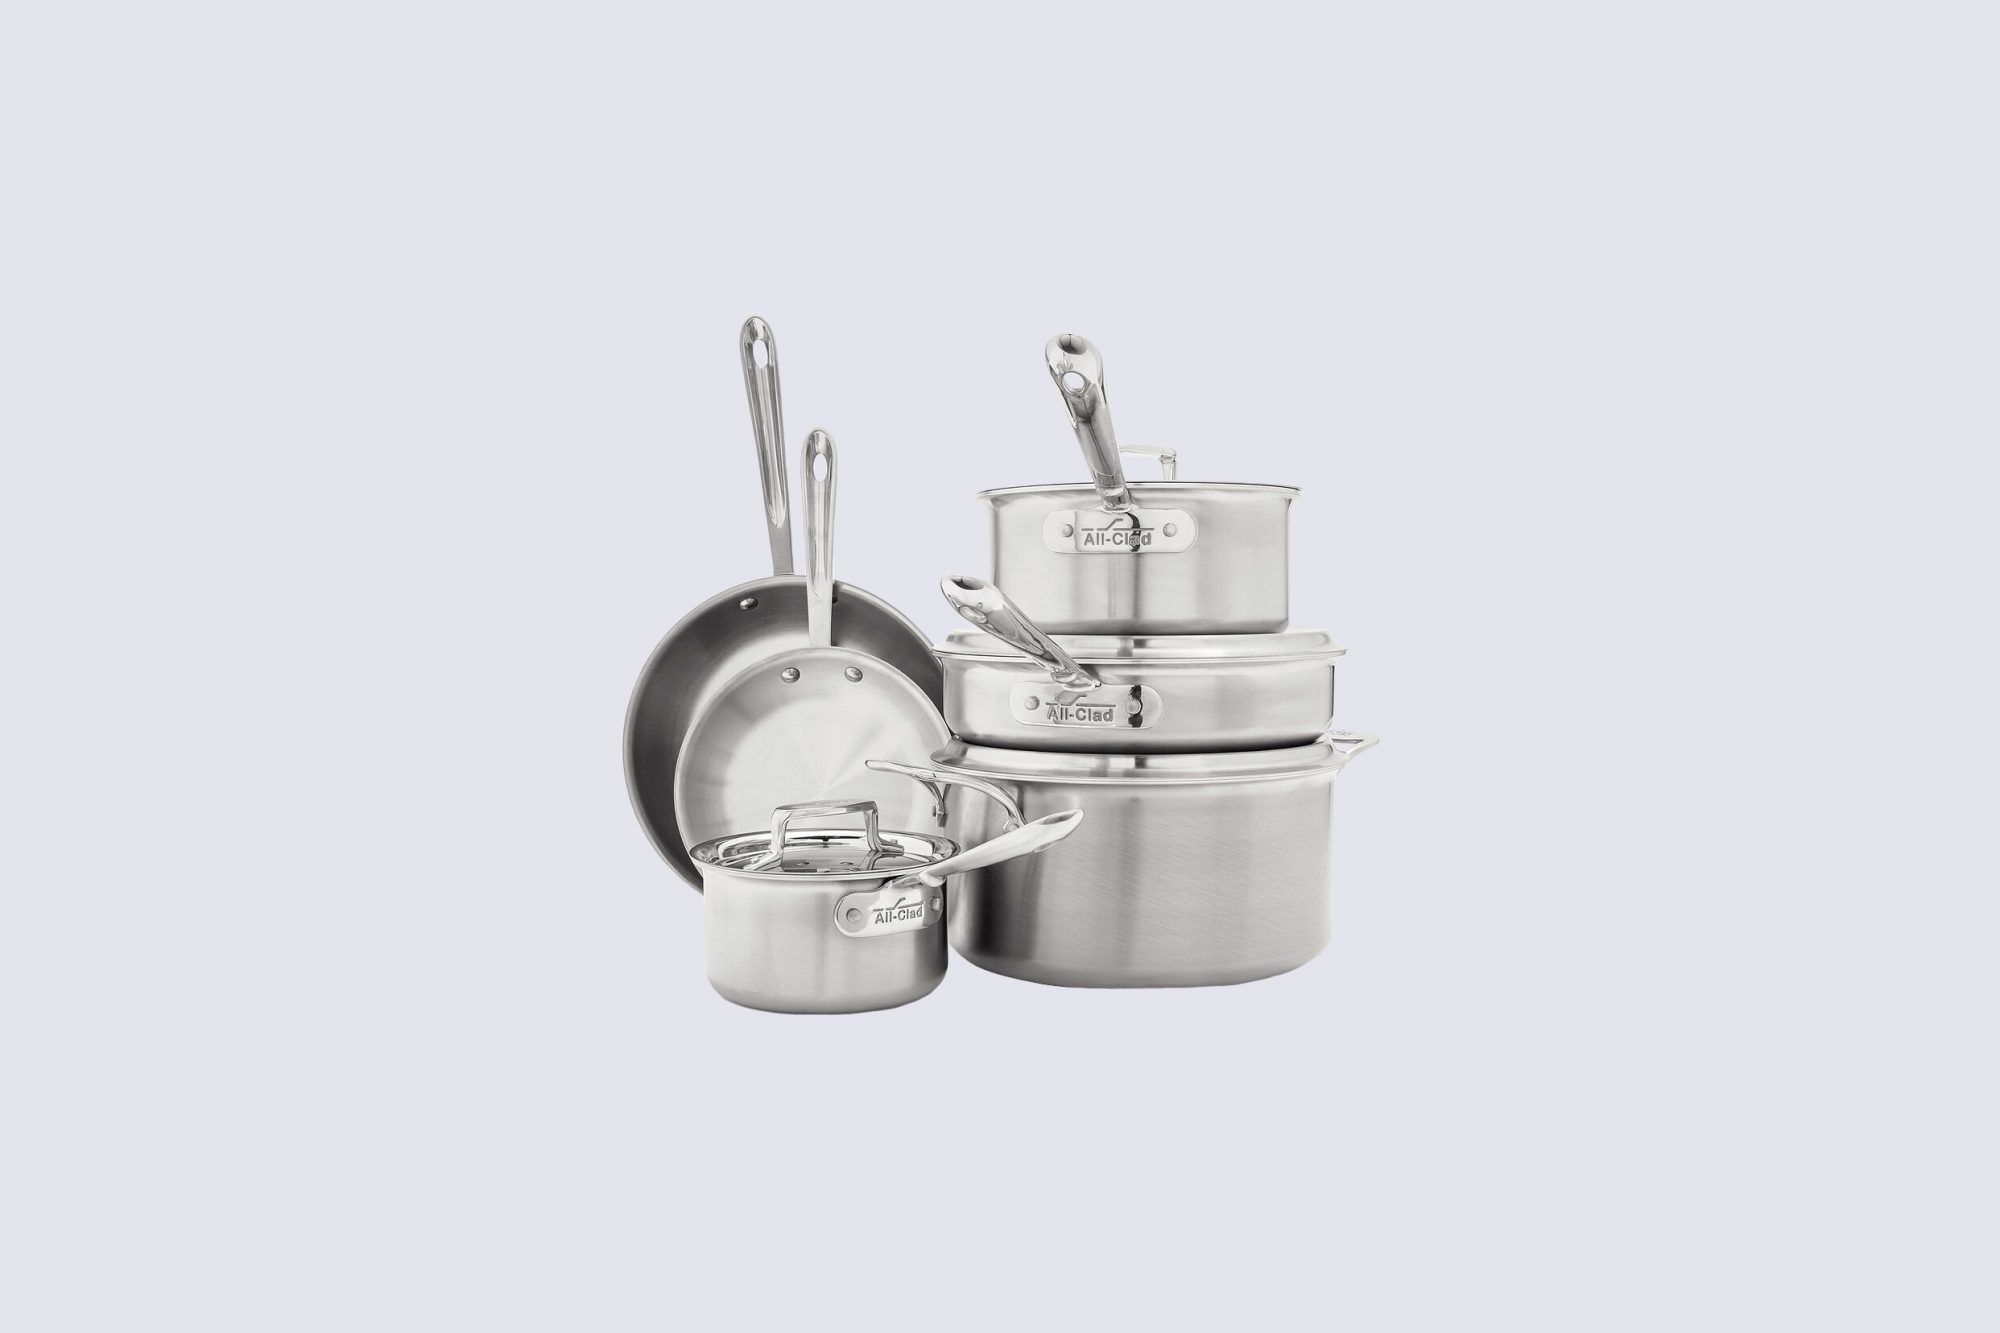 all clad d5 brushed stainless steel cookware set